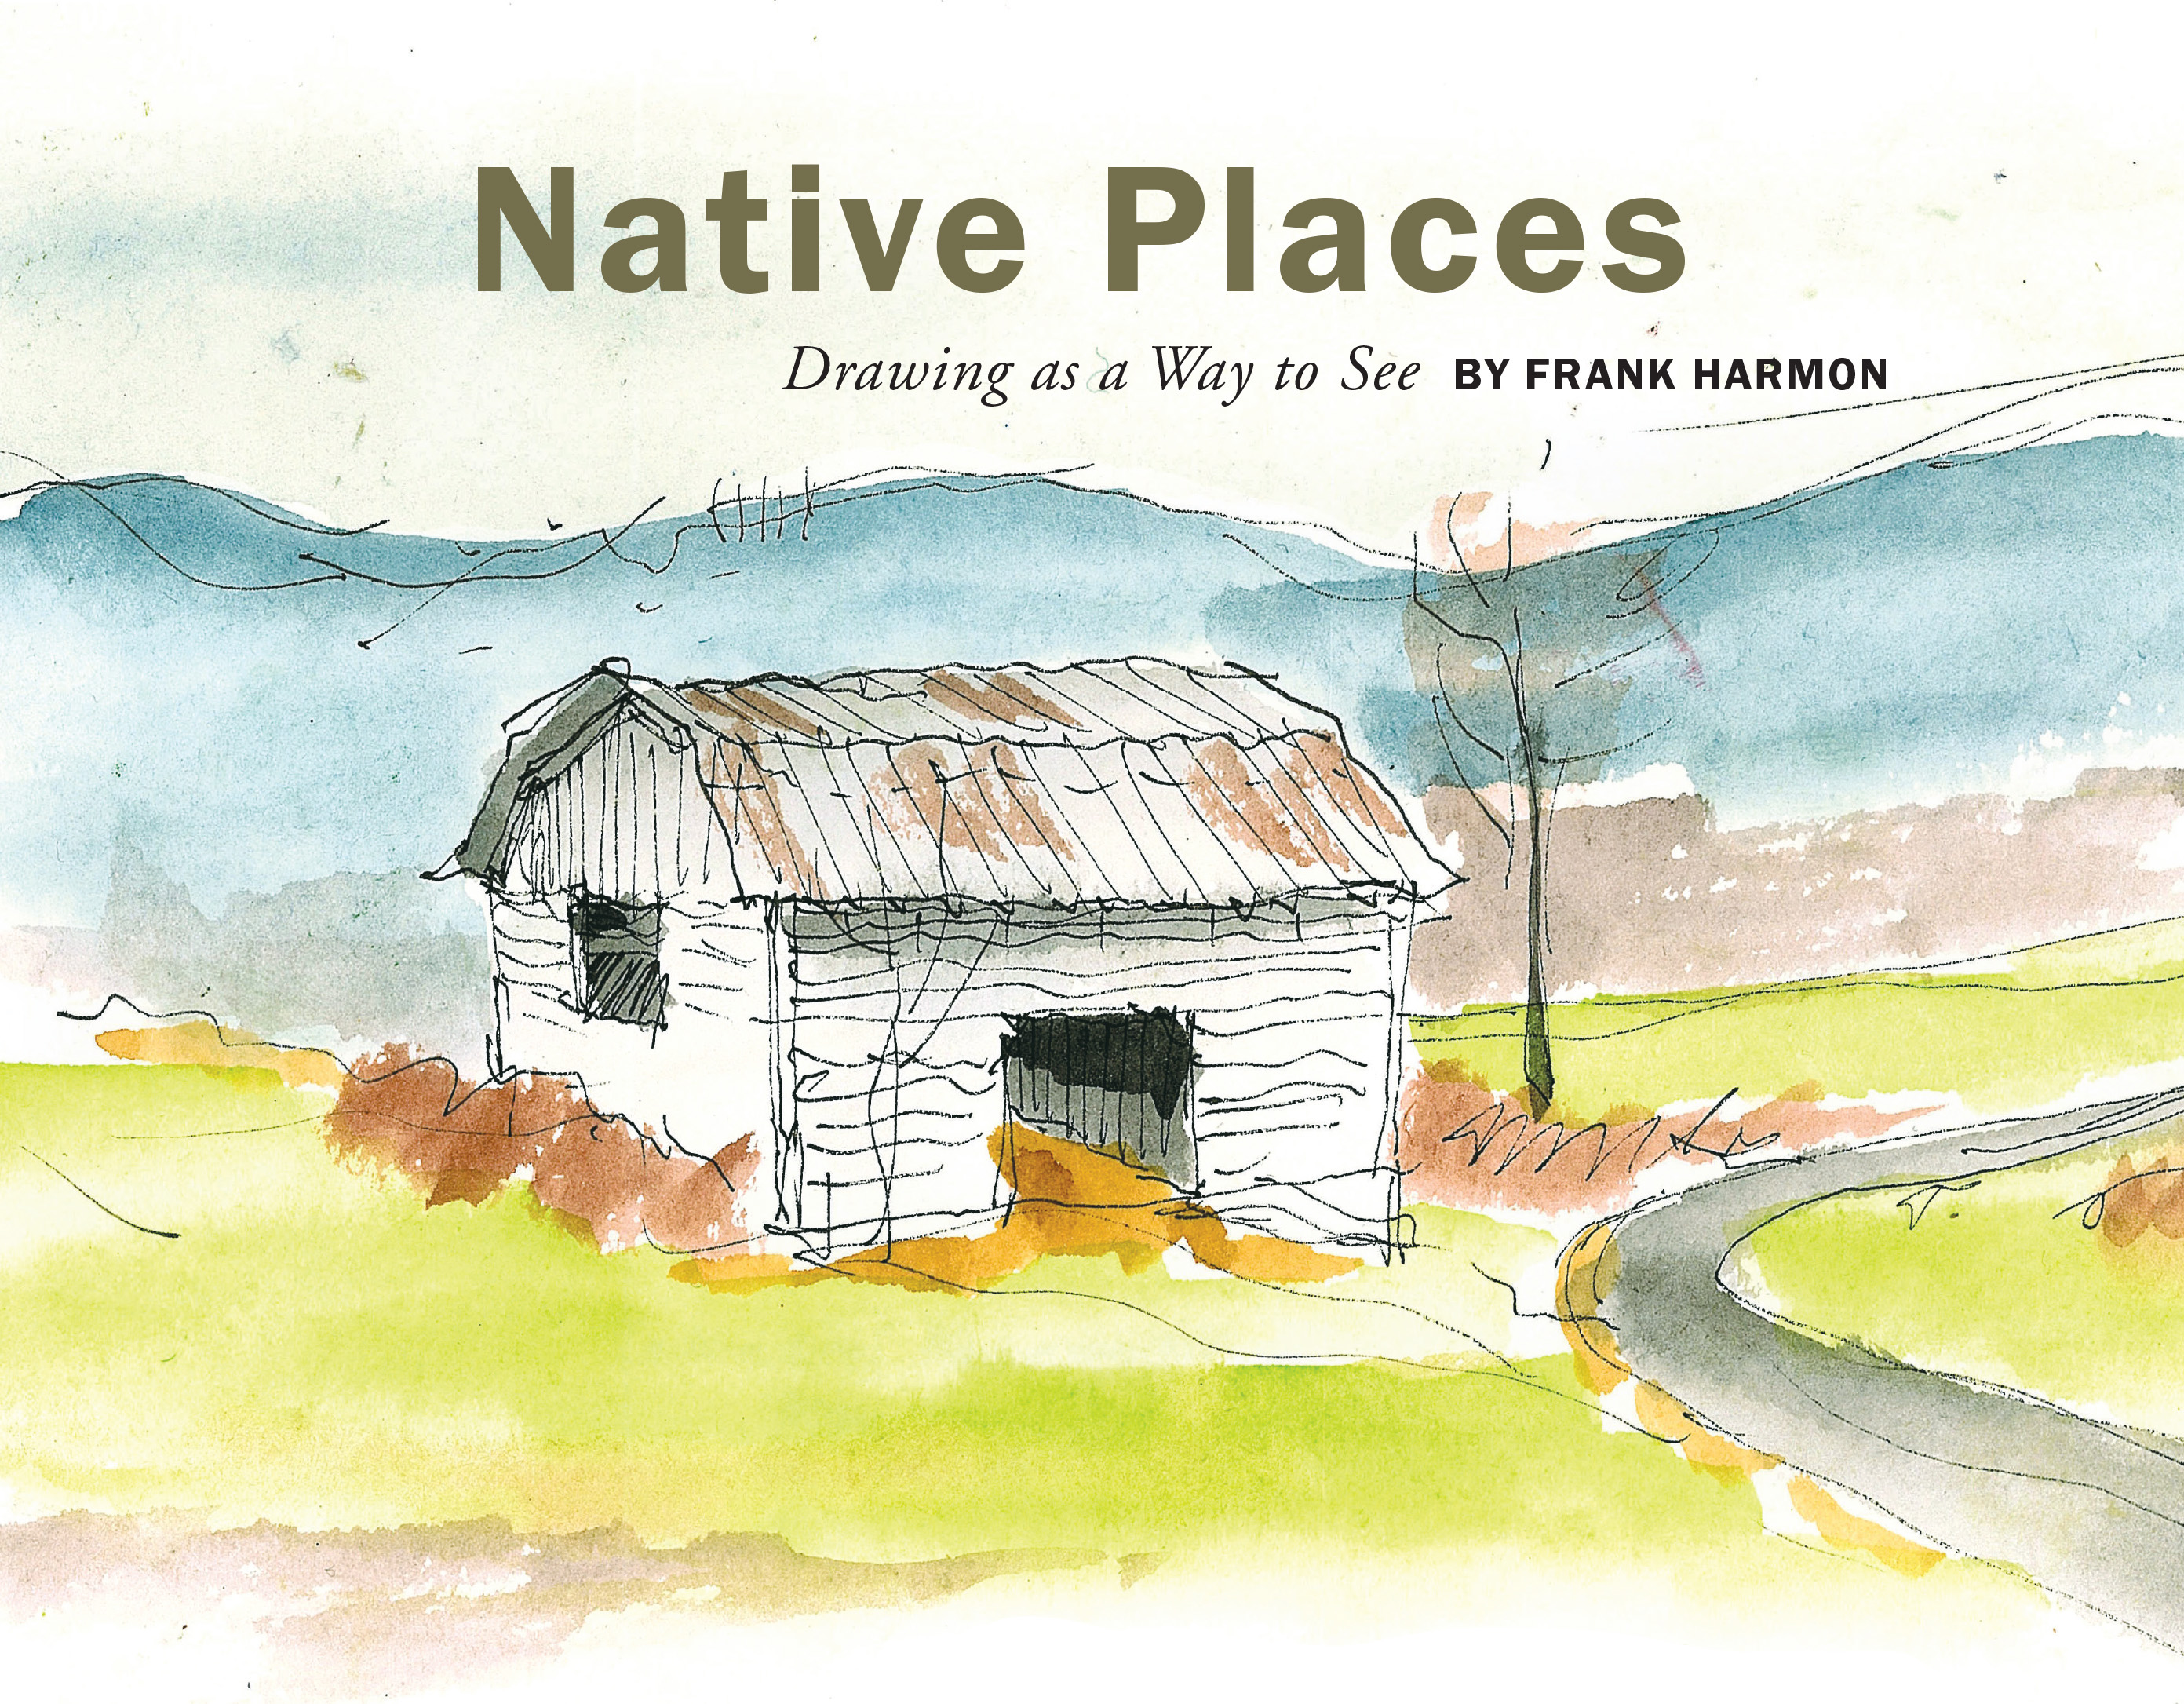 Native Places, by Frank Harmon